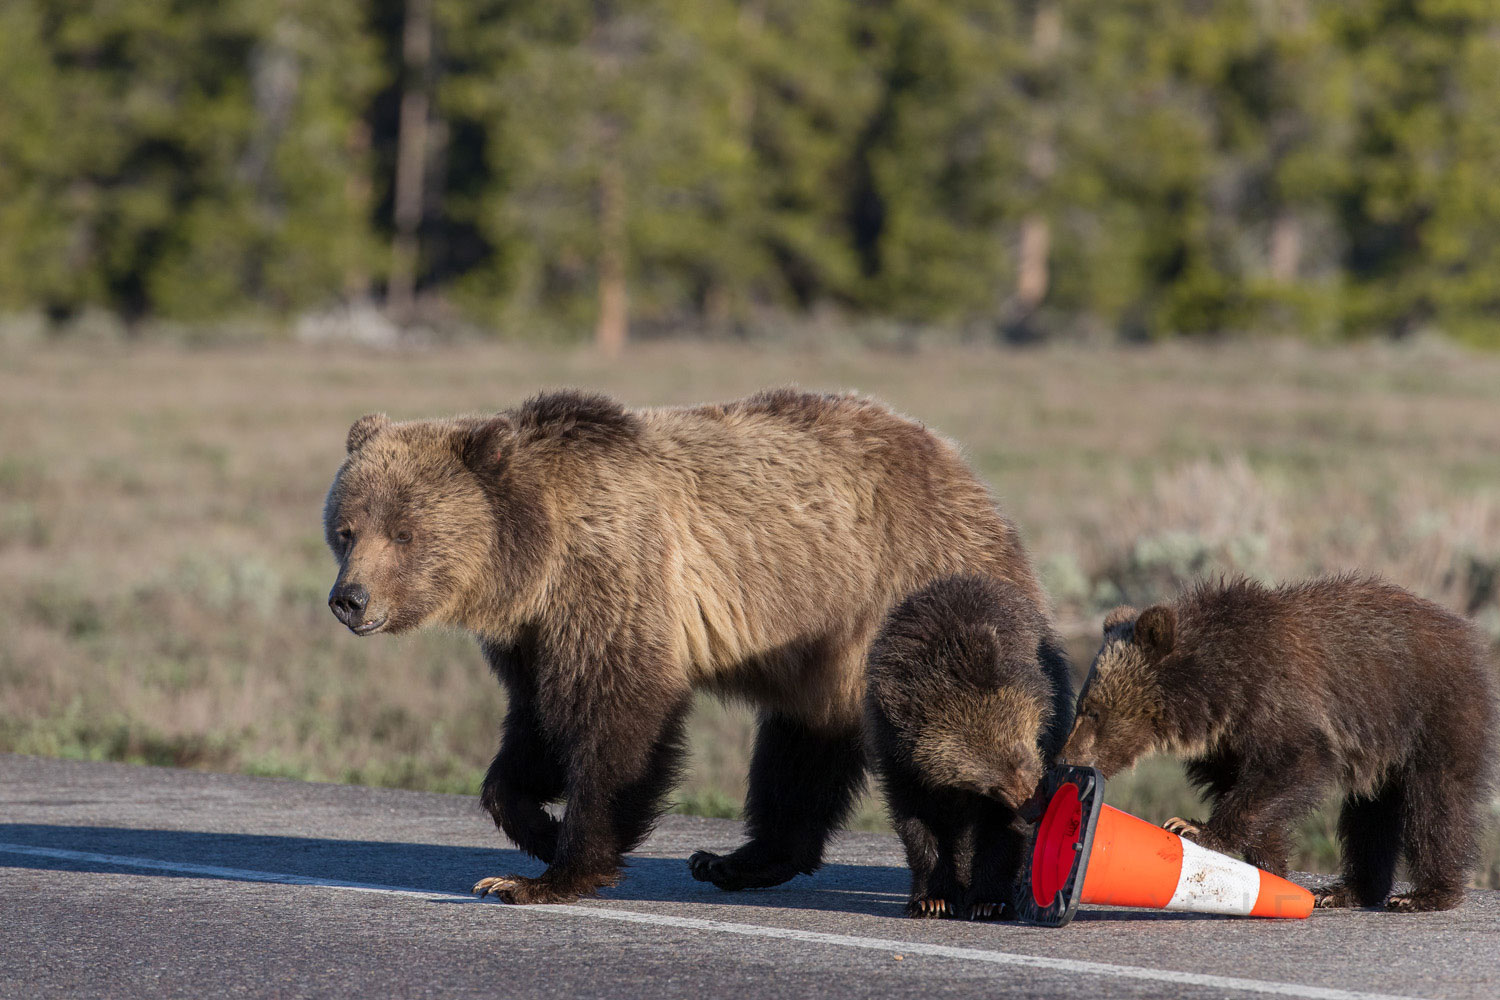 blondie, grizzly, bear, cub, grand teton, photo, image, spring, 2018, photo